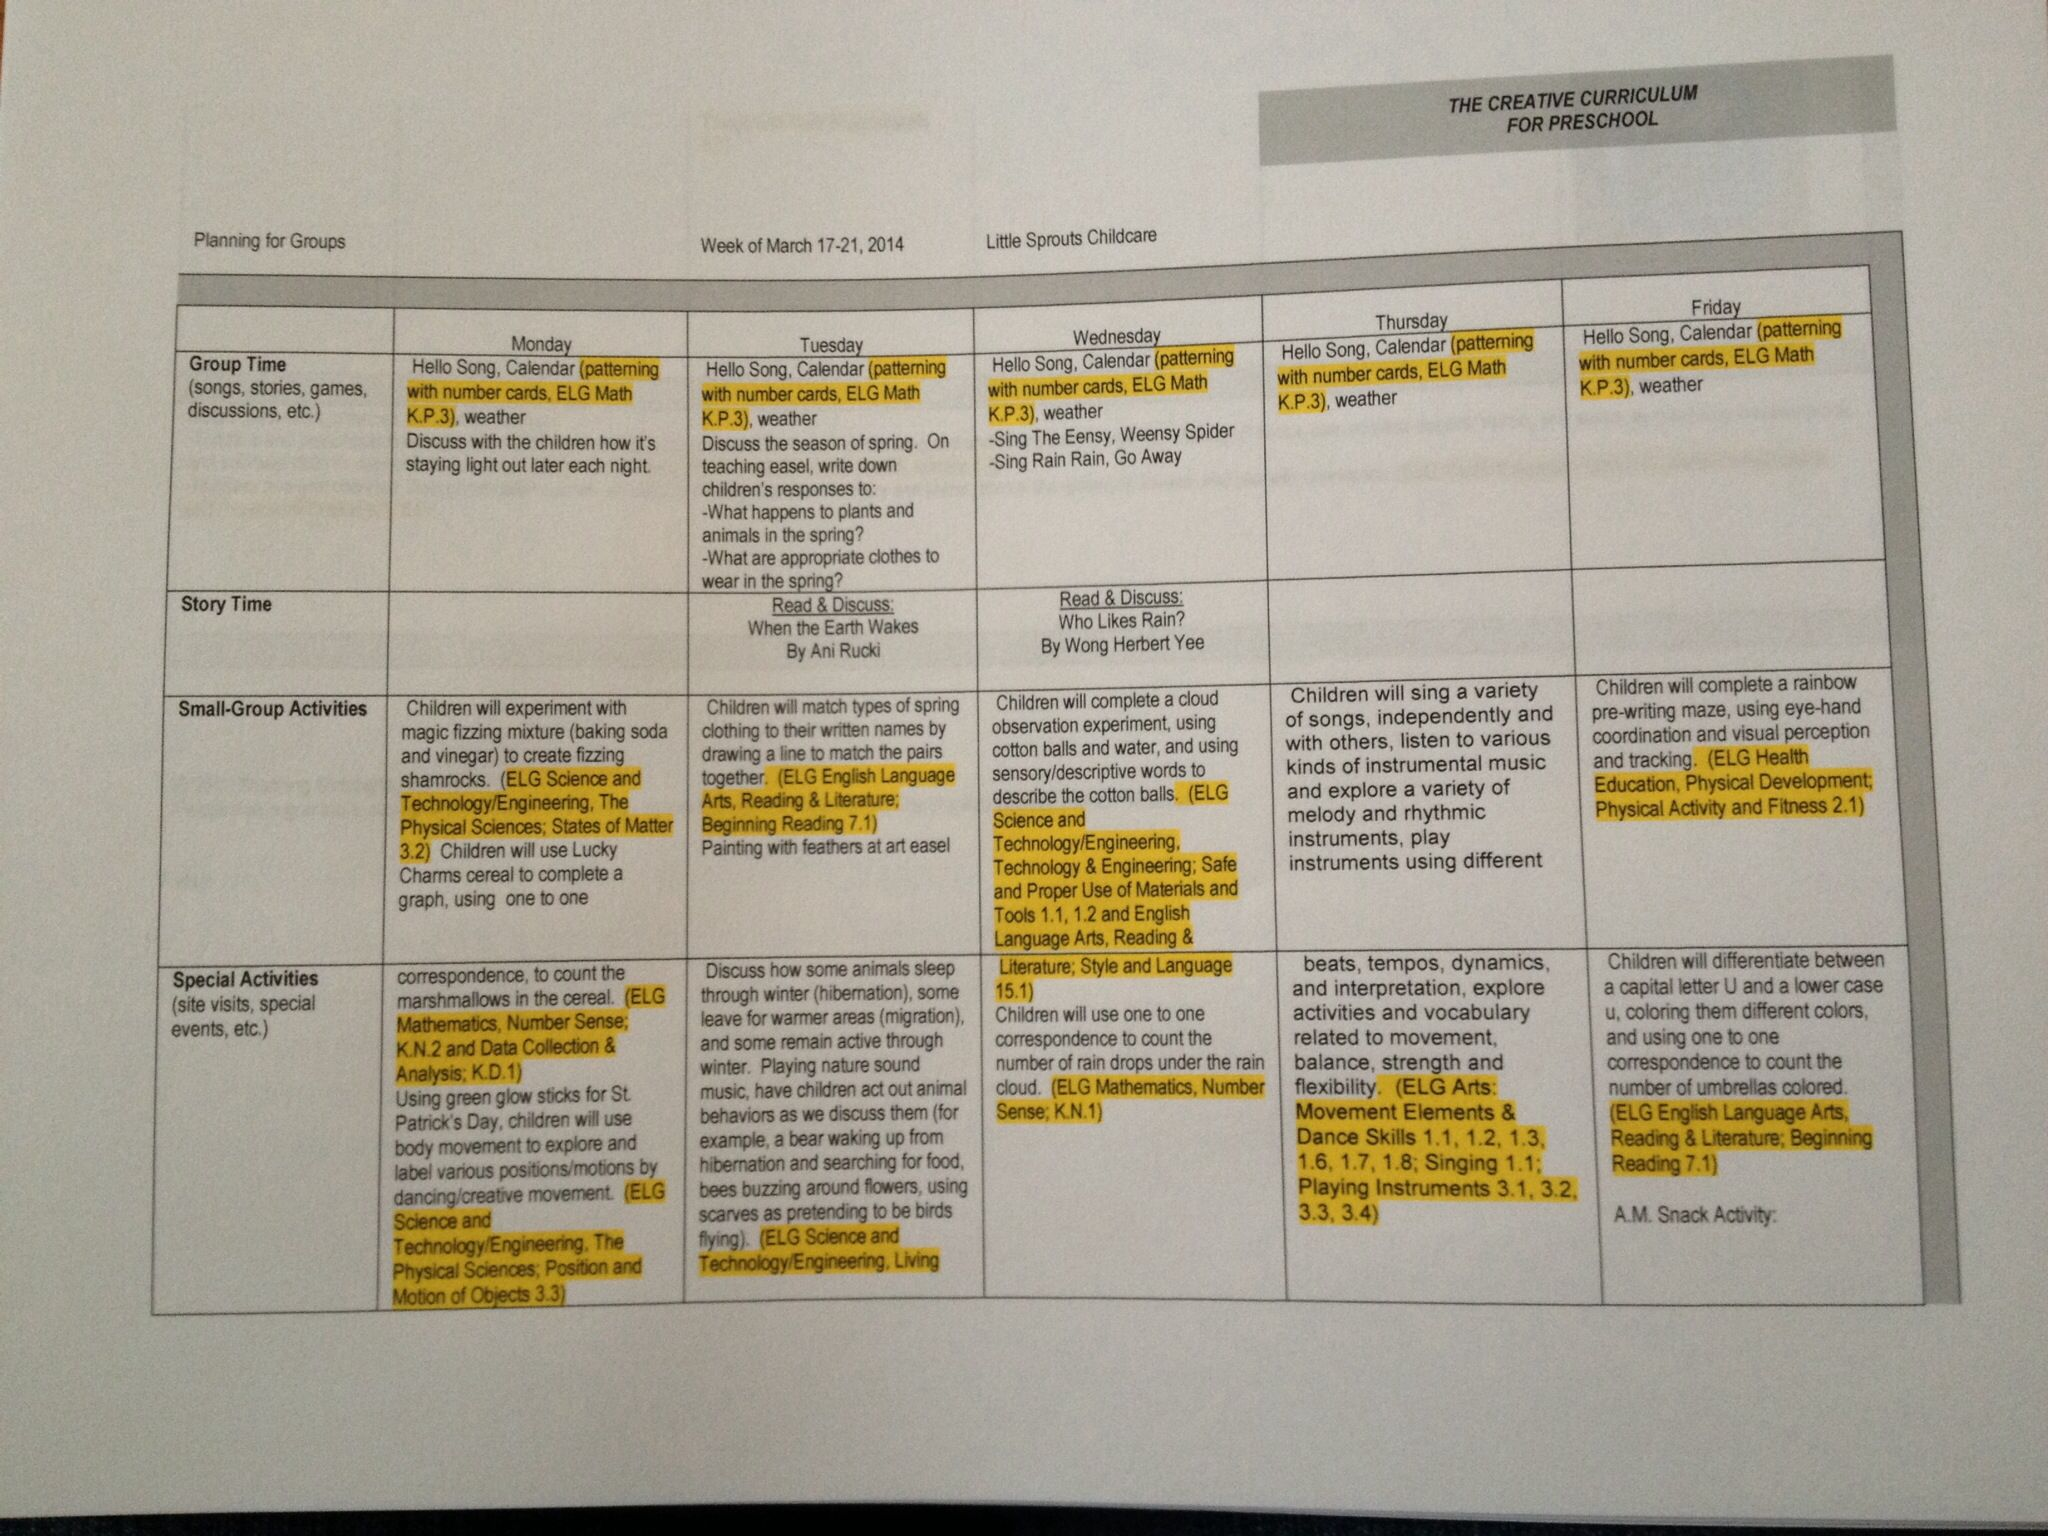 Sample Of My Lesson Plan Aligned To The Massachusetts Early Learning Guidelines For Preschool